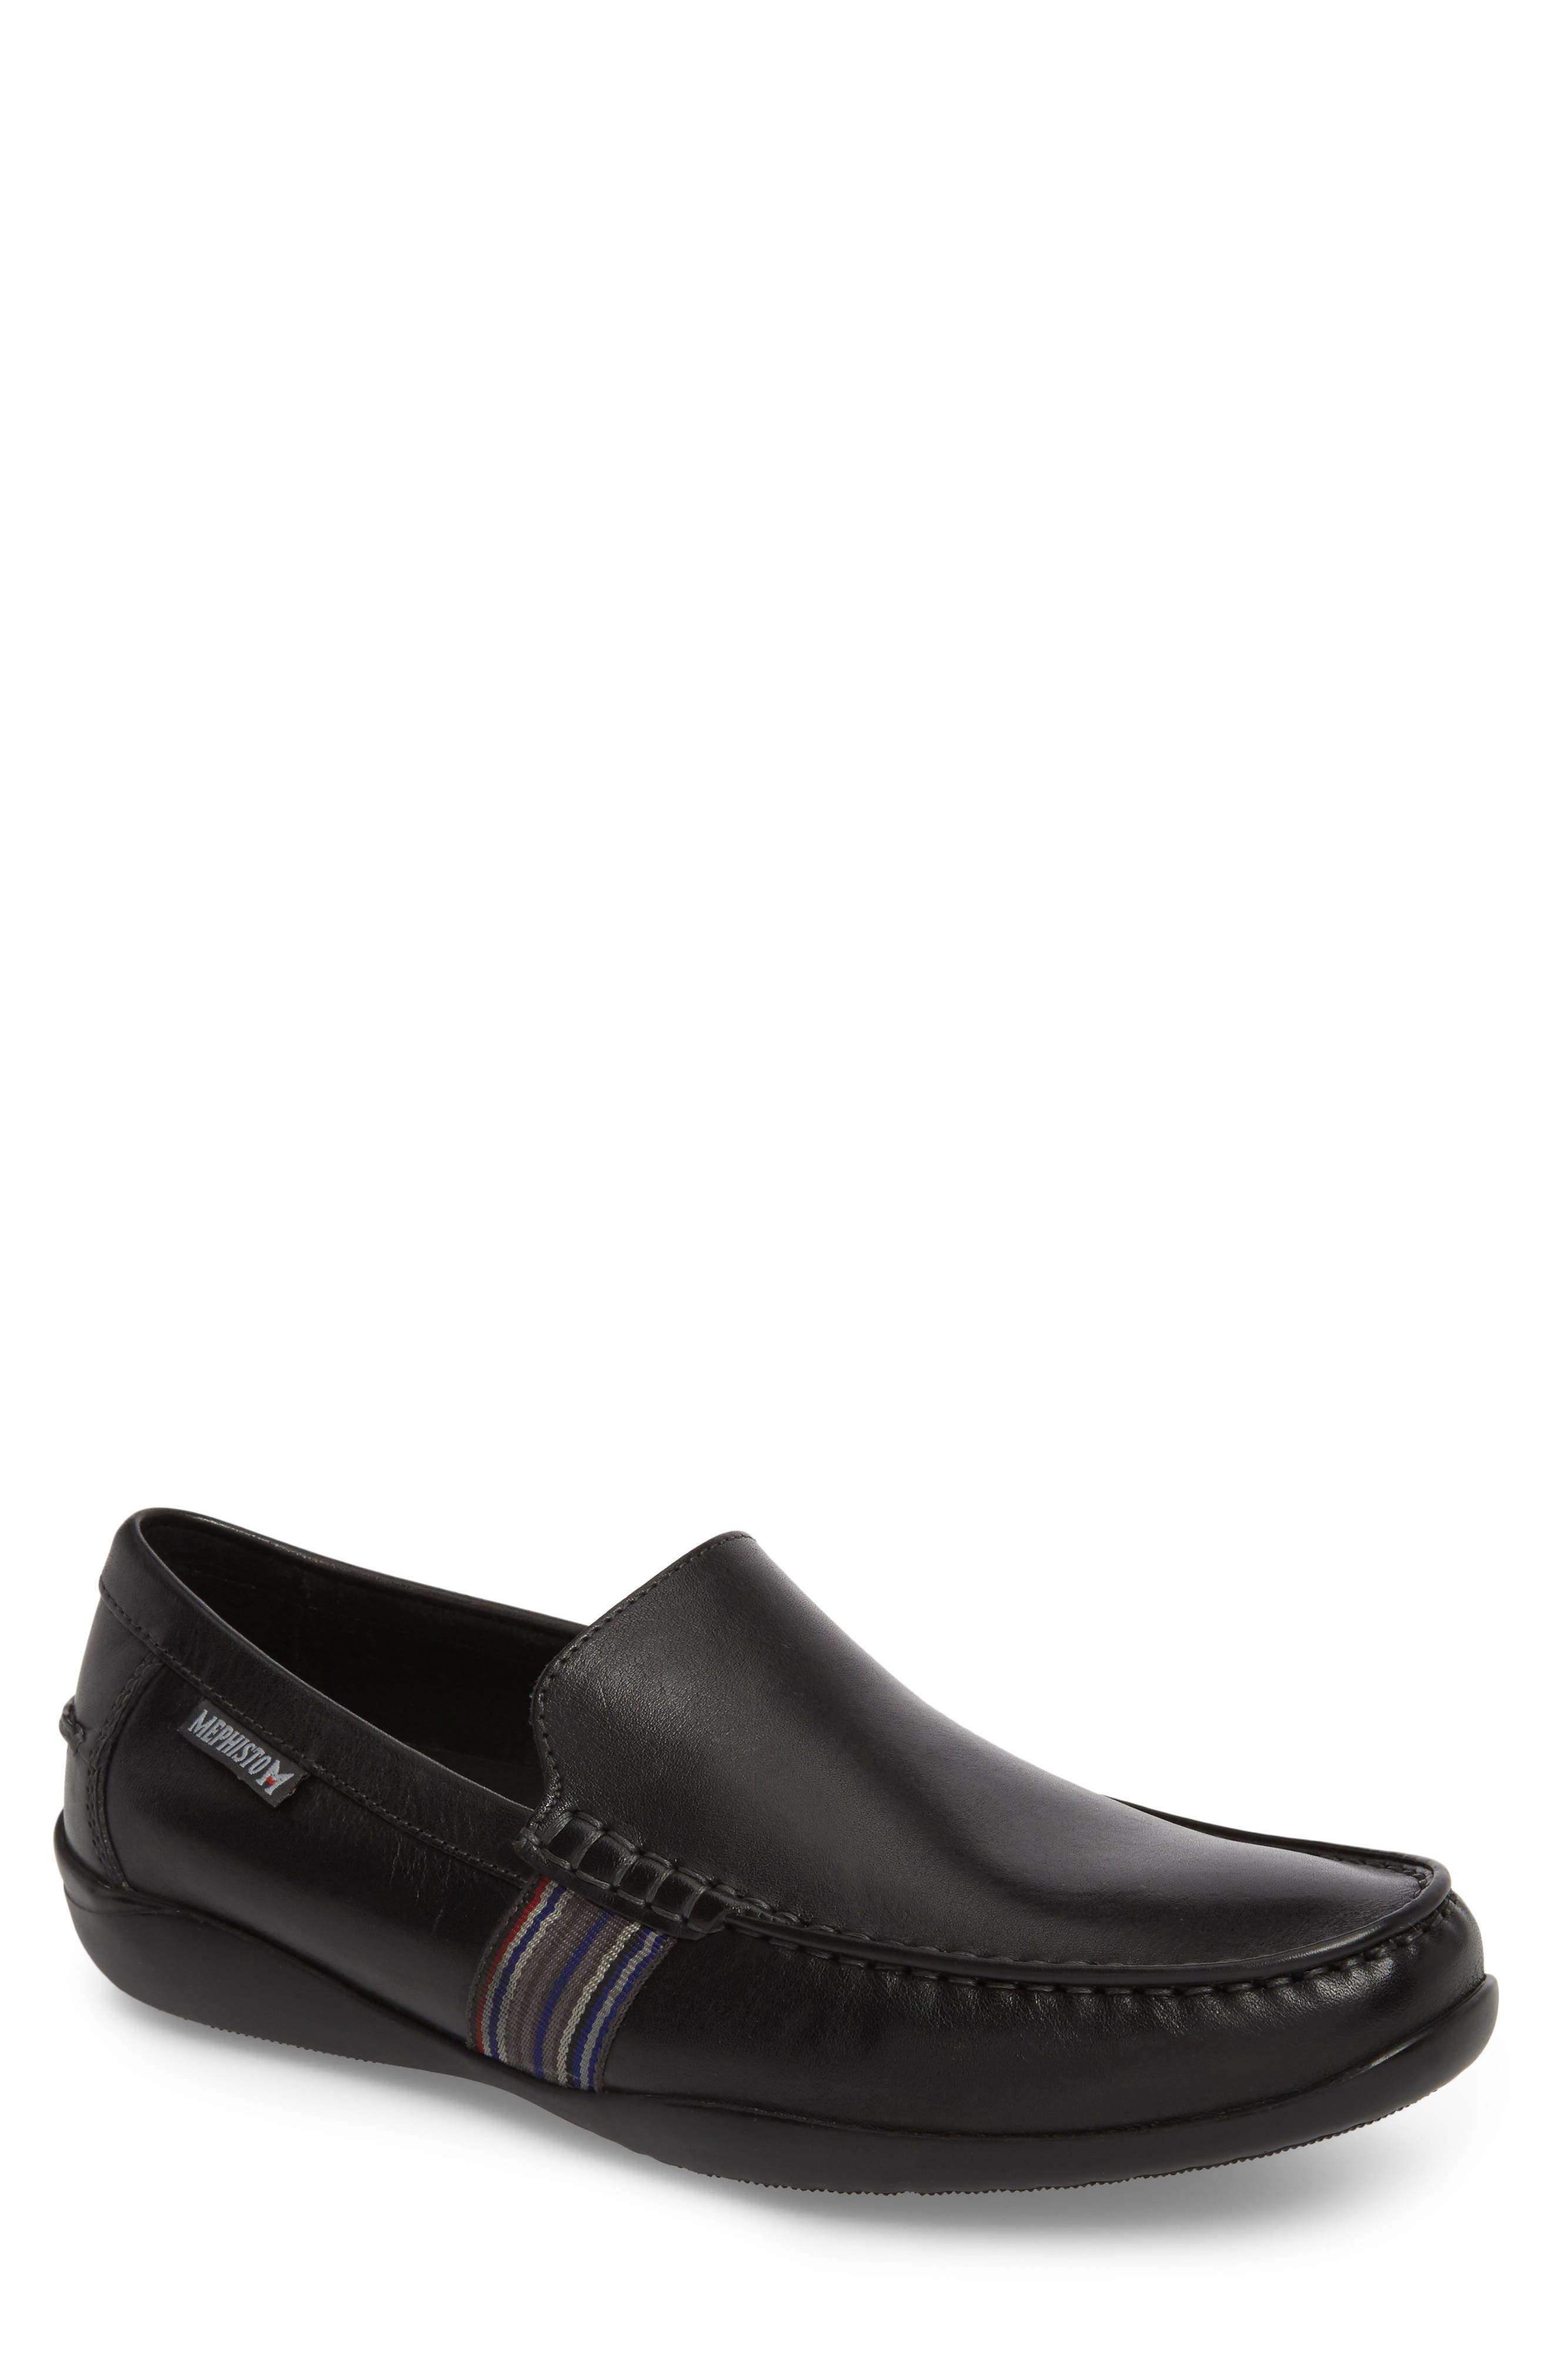 Idris Banded Loafer,                             Main thumbnail 1, color,                             BLACK LEATHER